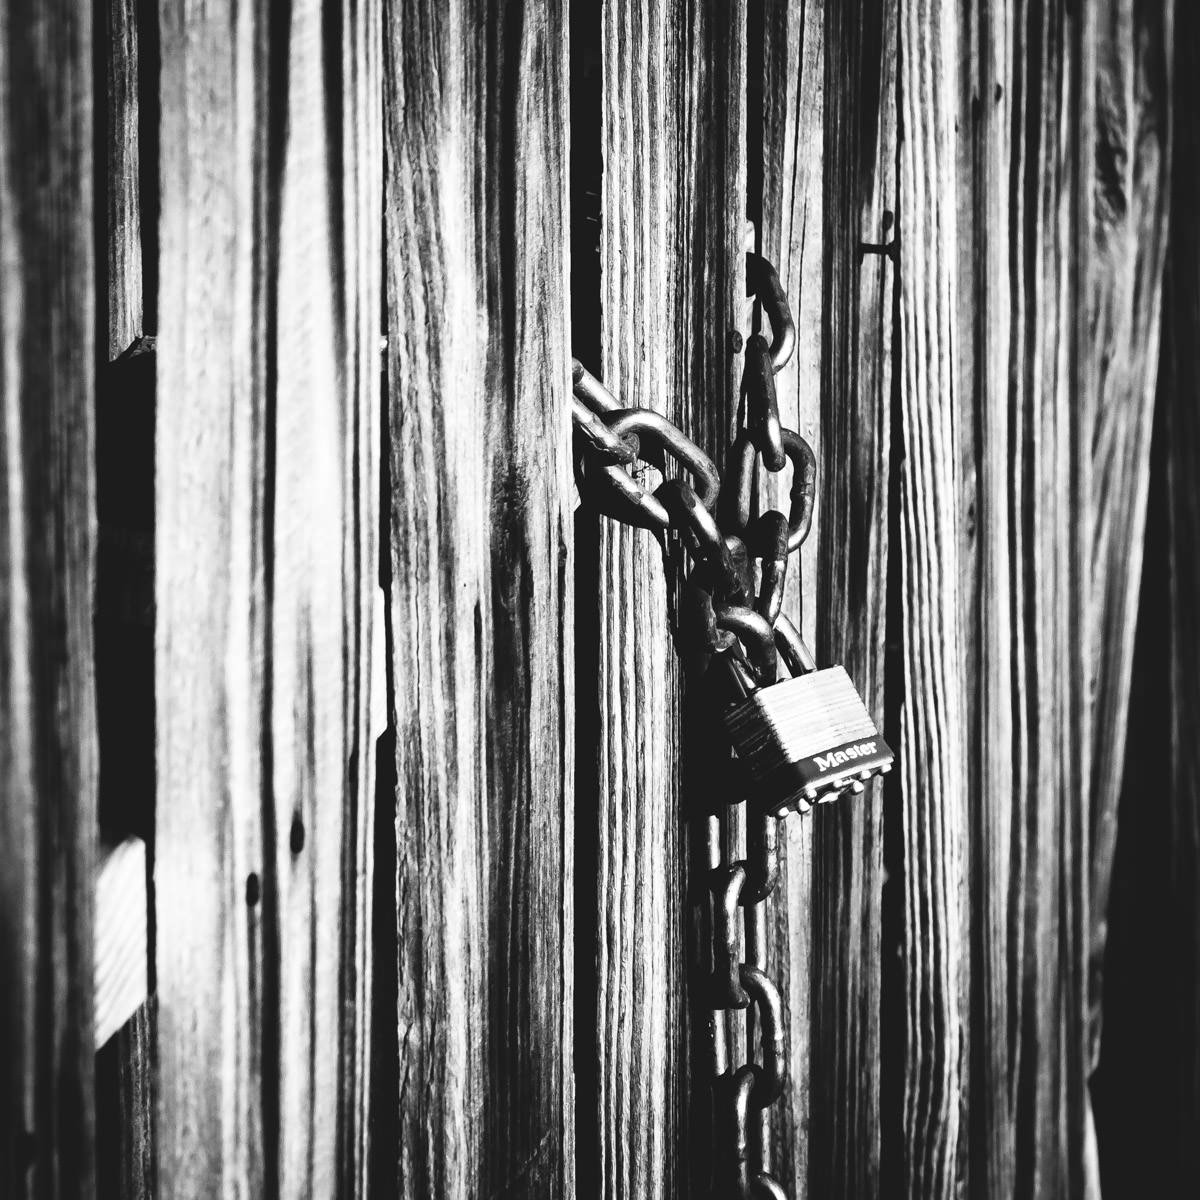 A lonely padlock hangs from a chained gate in Nacogdoches, Texas.